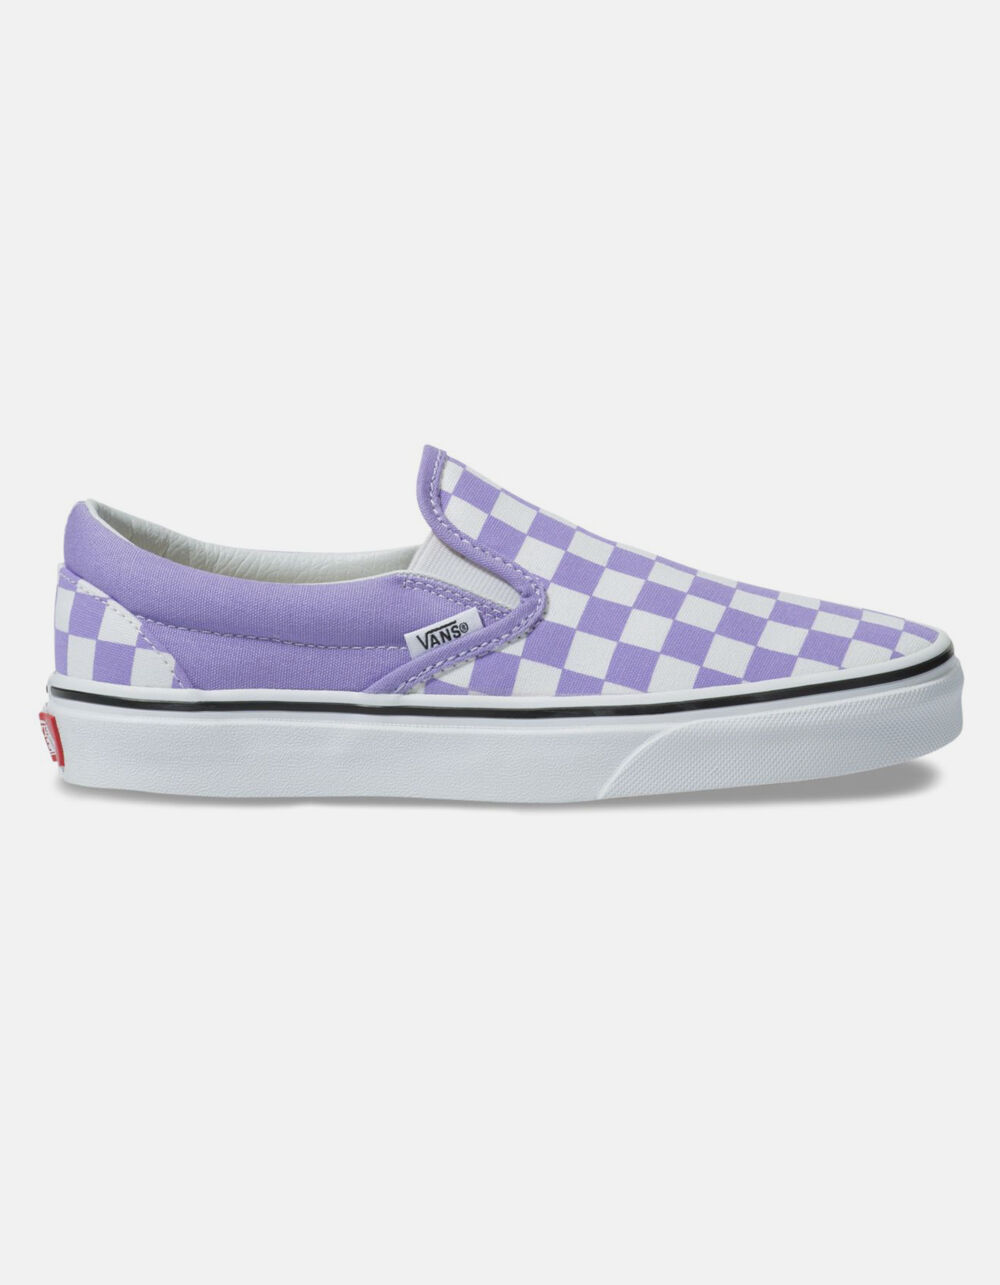 VANS Checkerboard Classic Slip-On Violet Tulip & True White Shoes